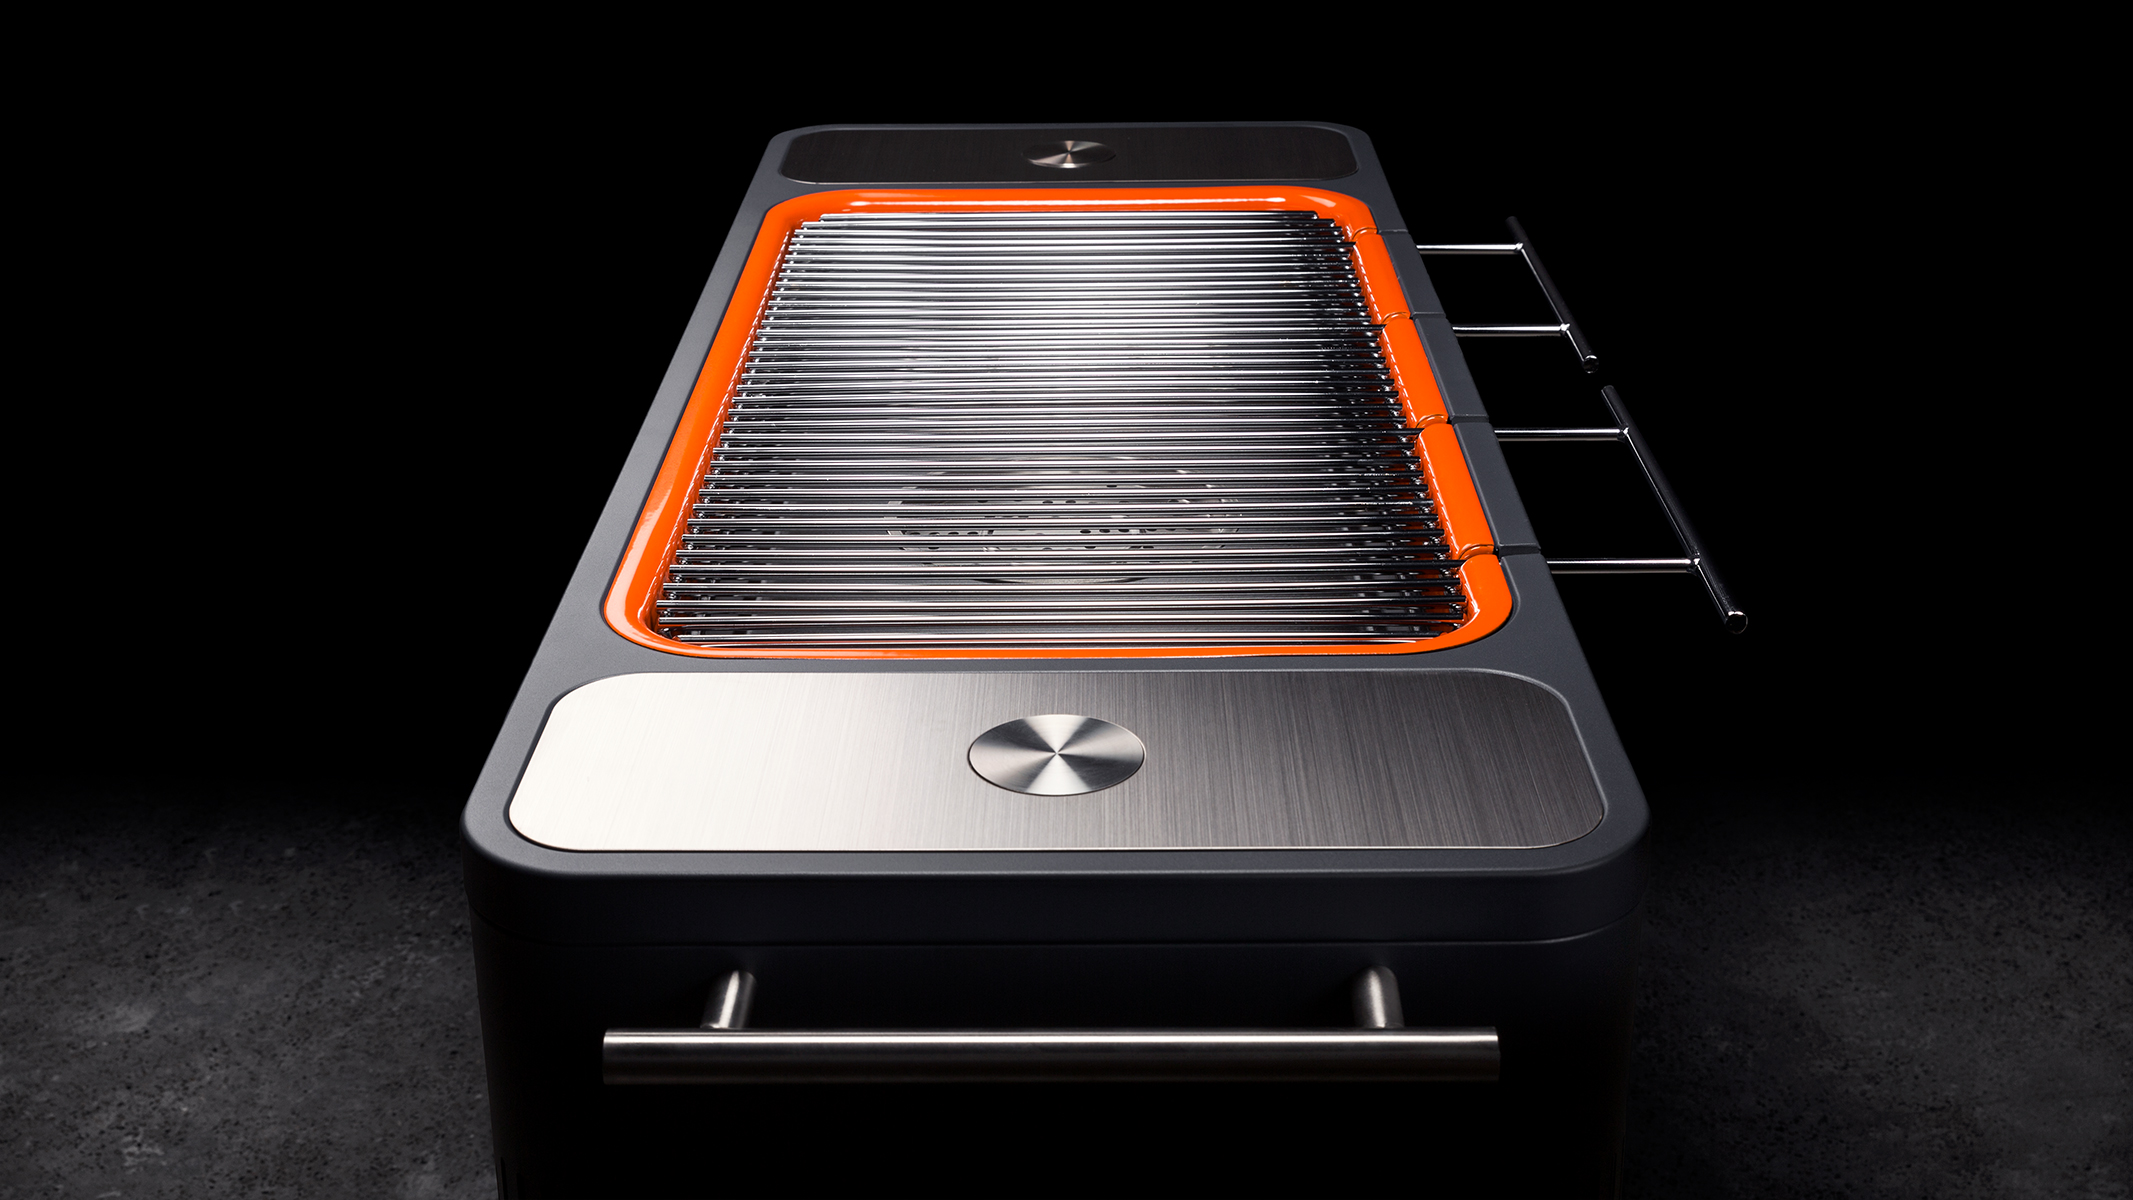 Everdure by Heston Blumenthal HUB Charcoal Barbeque